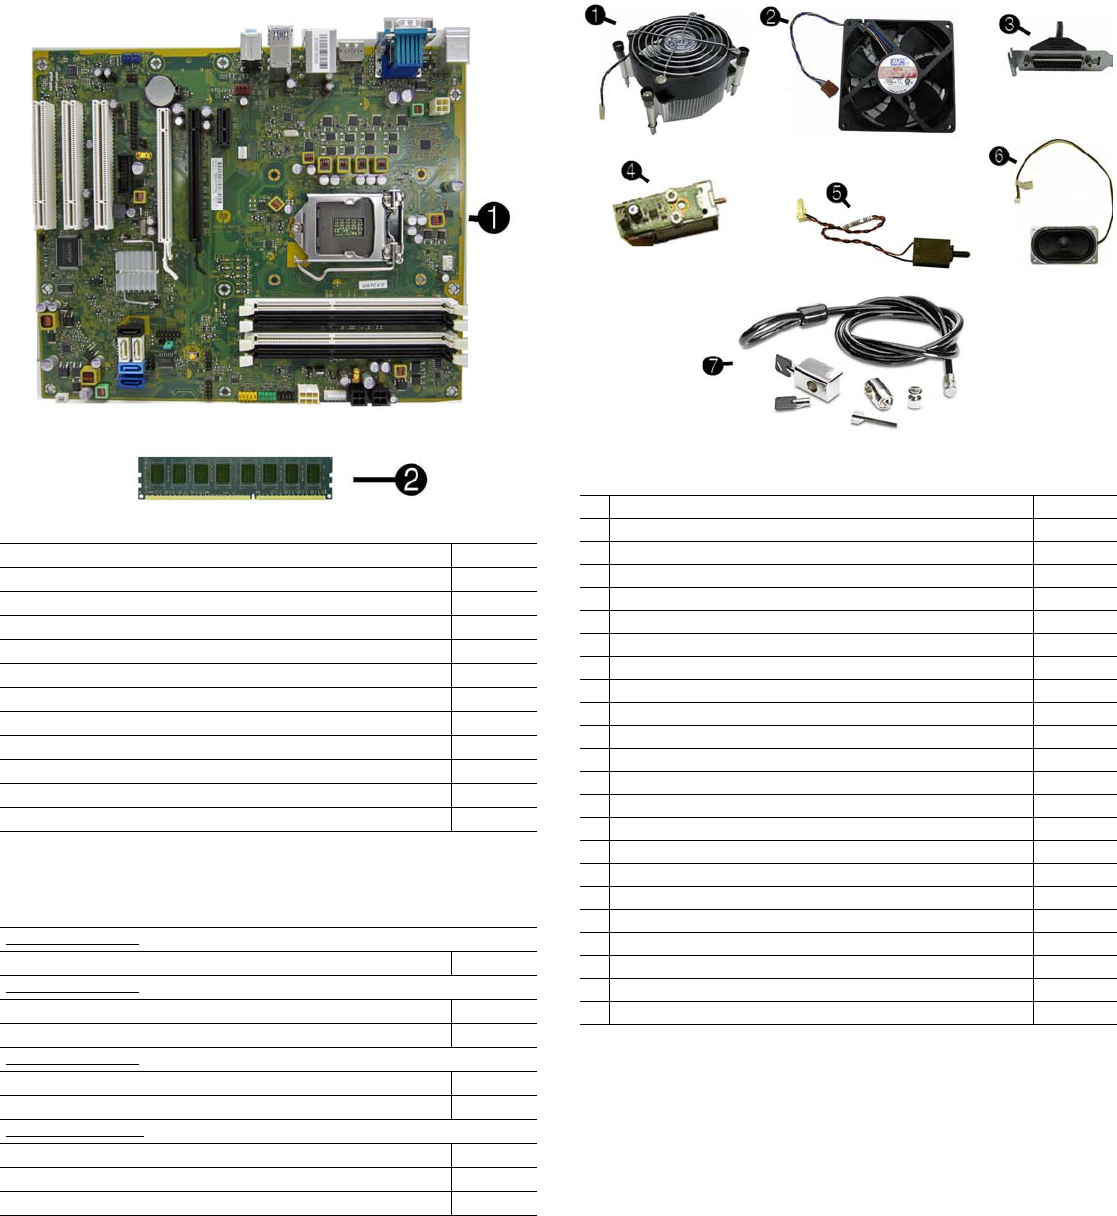 Hp Compaq 8300 Elite Cmt Chassis 690357 001 Illustrated Parts Wiring Diagram Omc 583653 Page 2